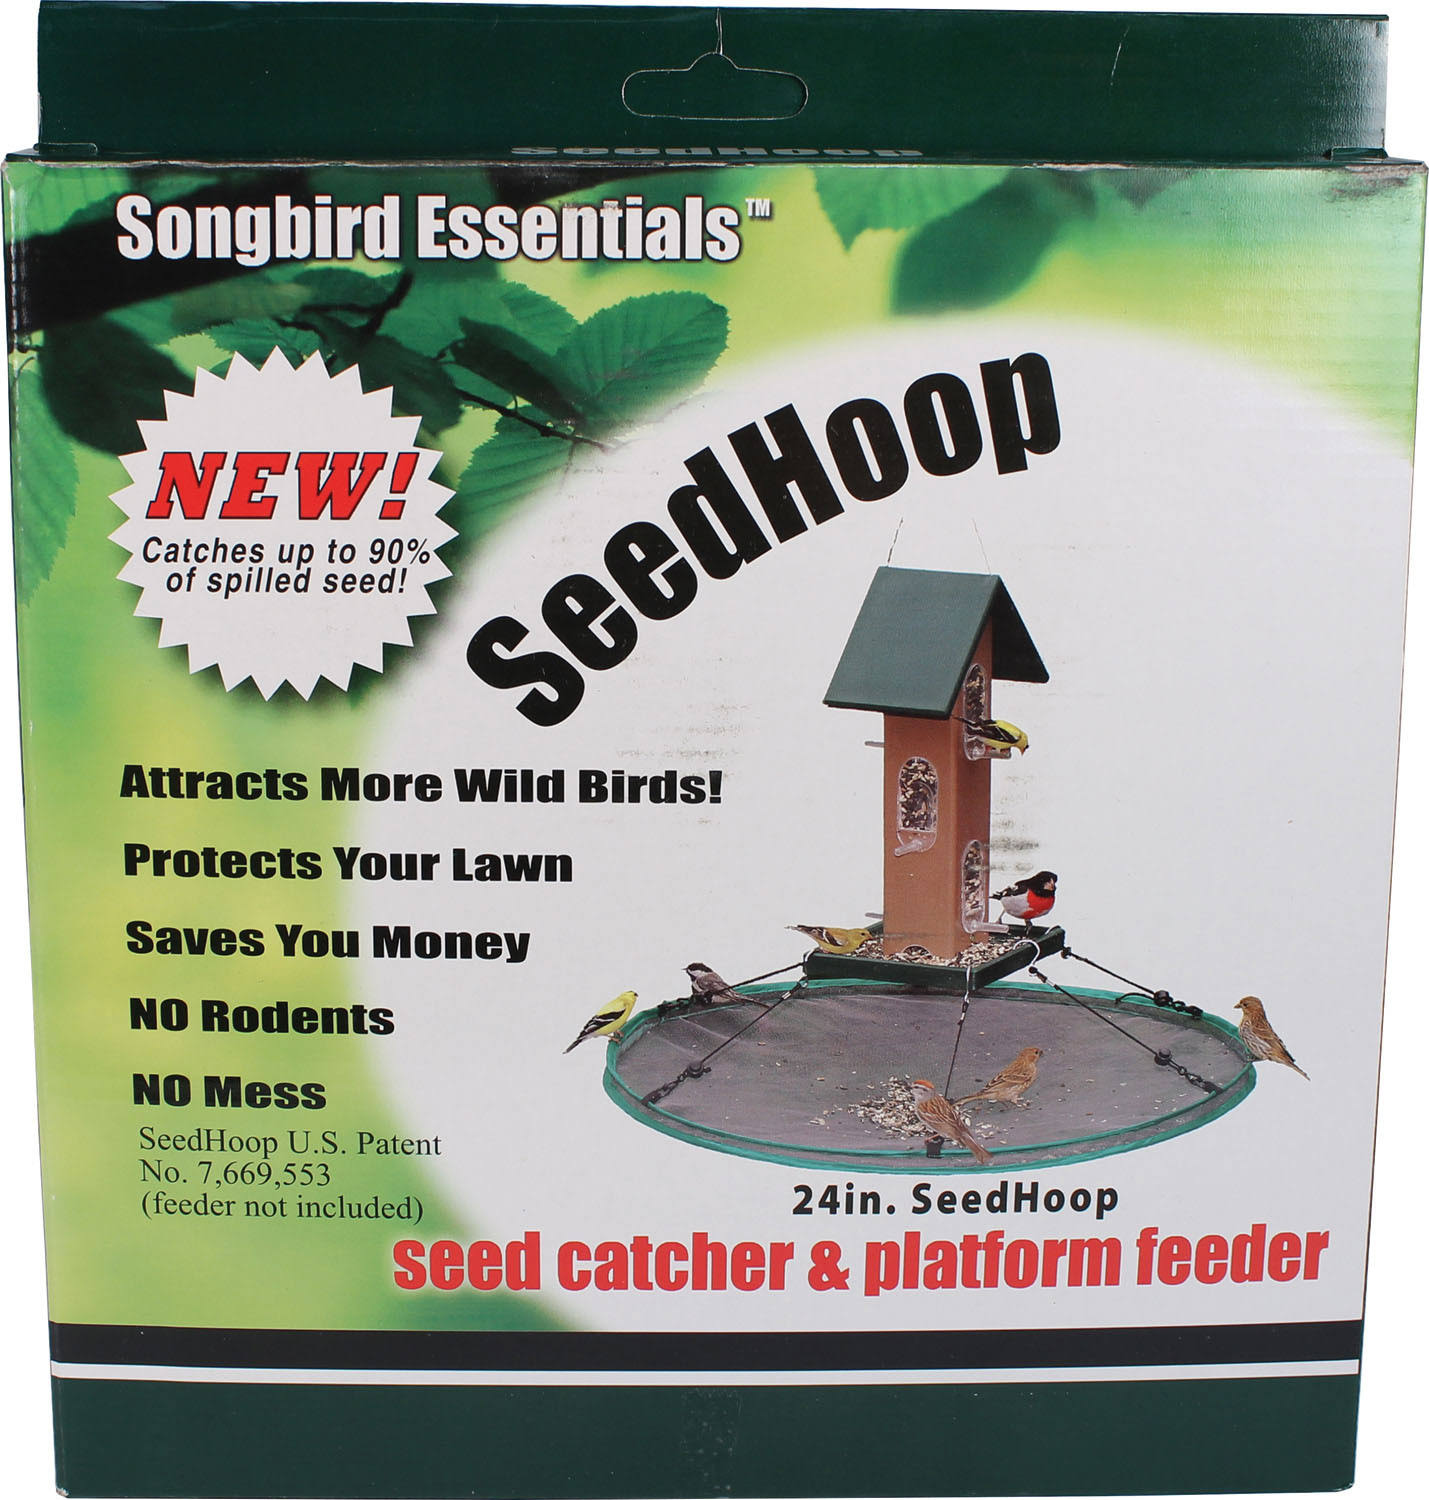 Songbird Essentials Green Seedhoop Seed Catcher 24 inch